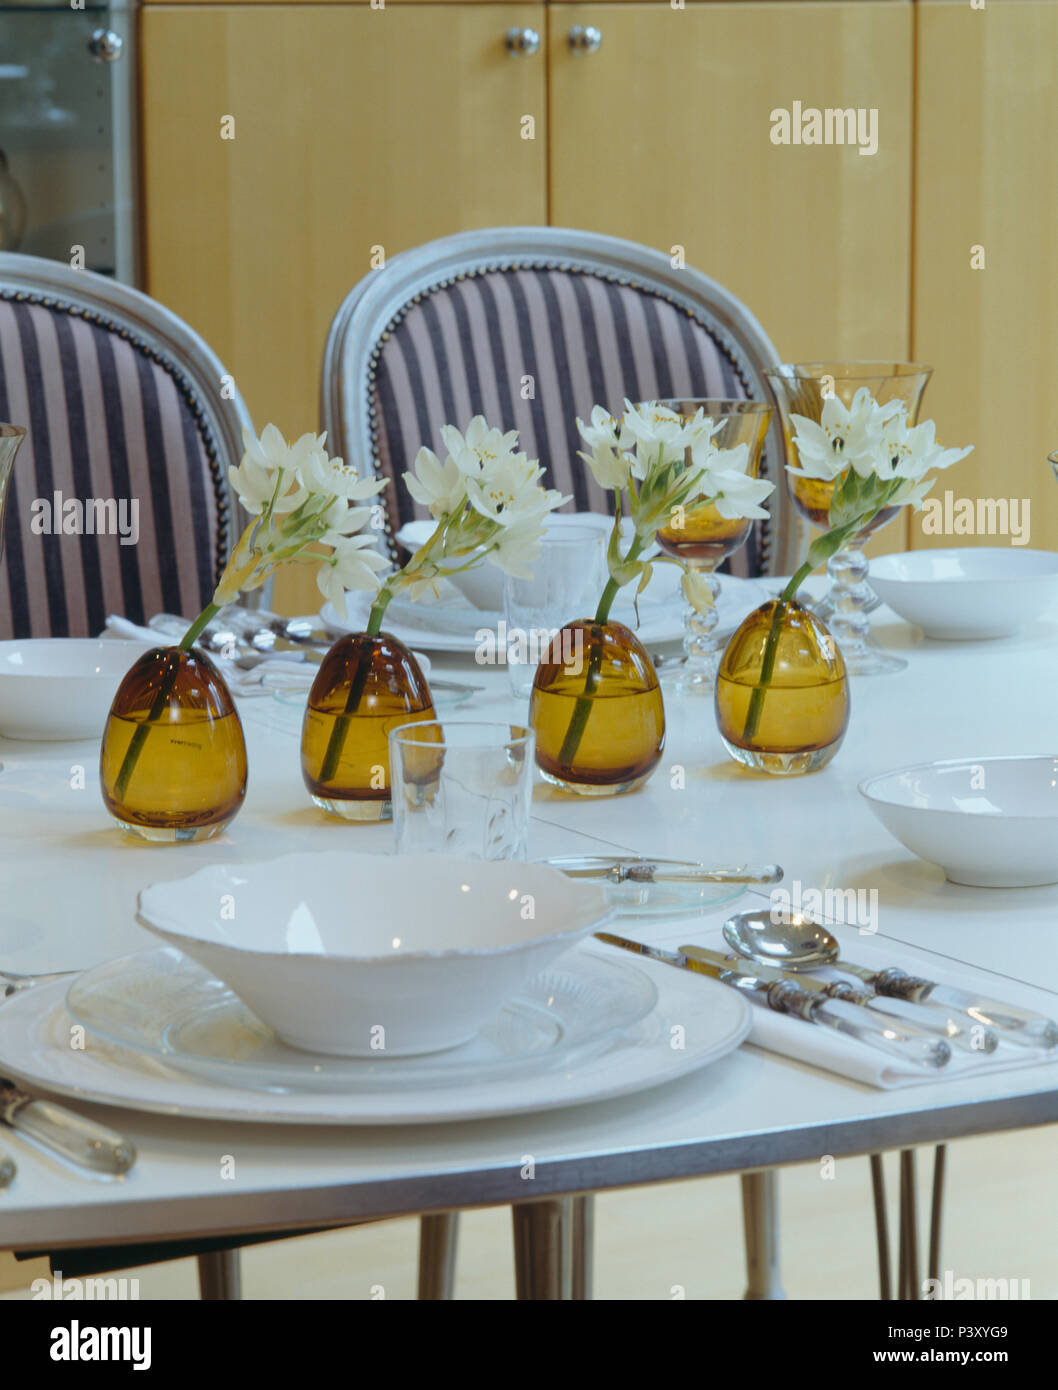 White flowers in row of amber glasses on white dining table with white crockery - Stock Image